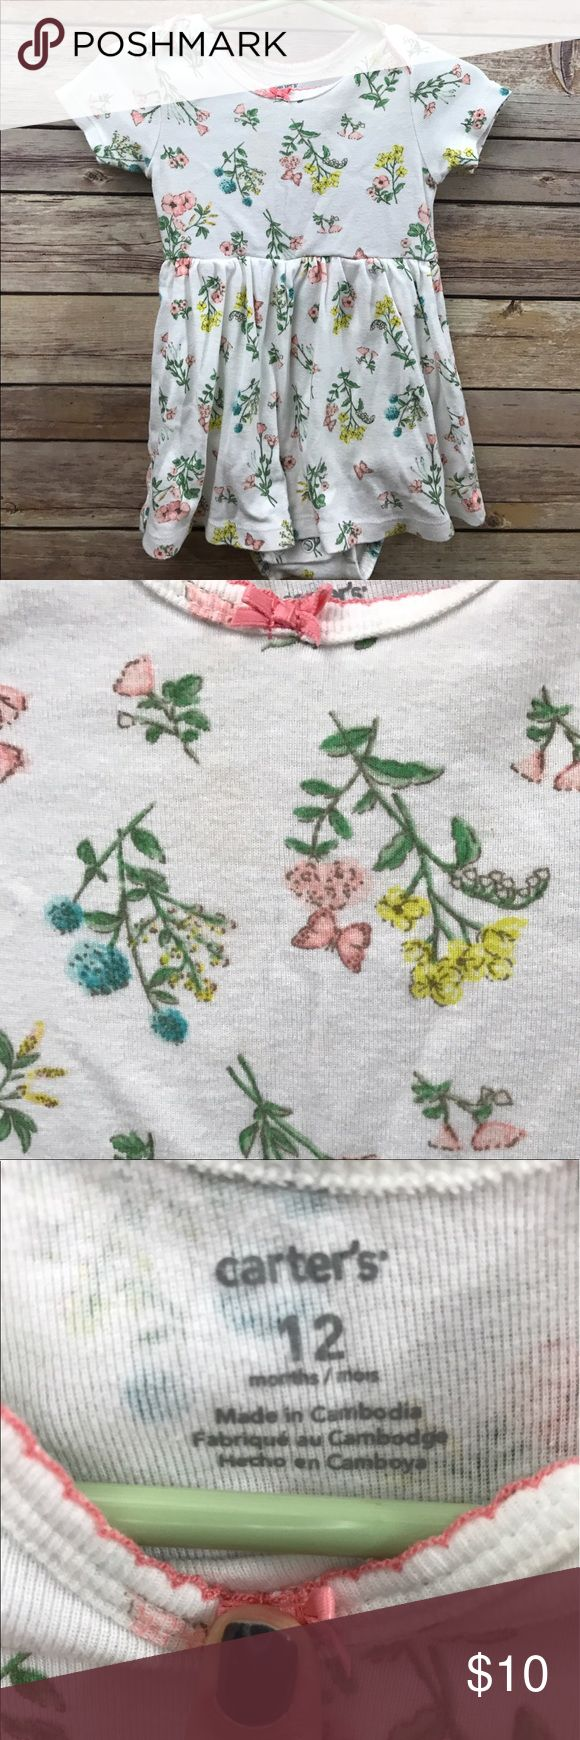 Carters Dress, 12 M Sweet, vintage feel, floral onesie dress. Excellent used condition. Carter's Dresses Casual